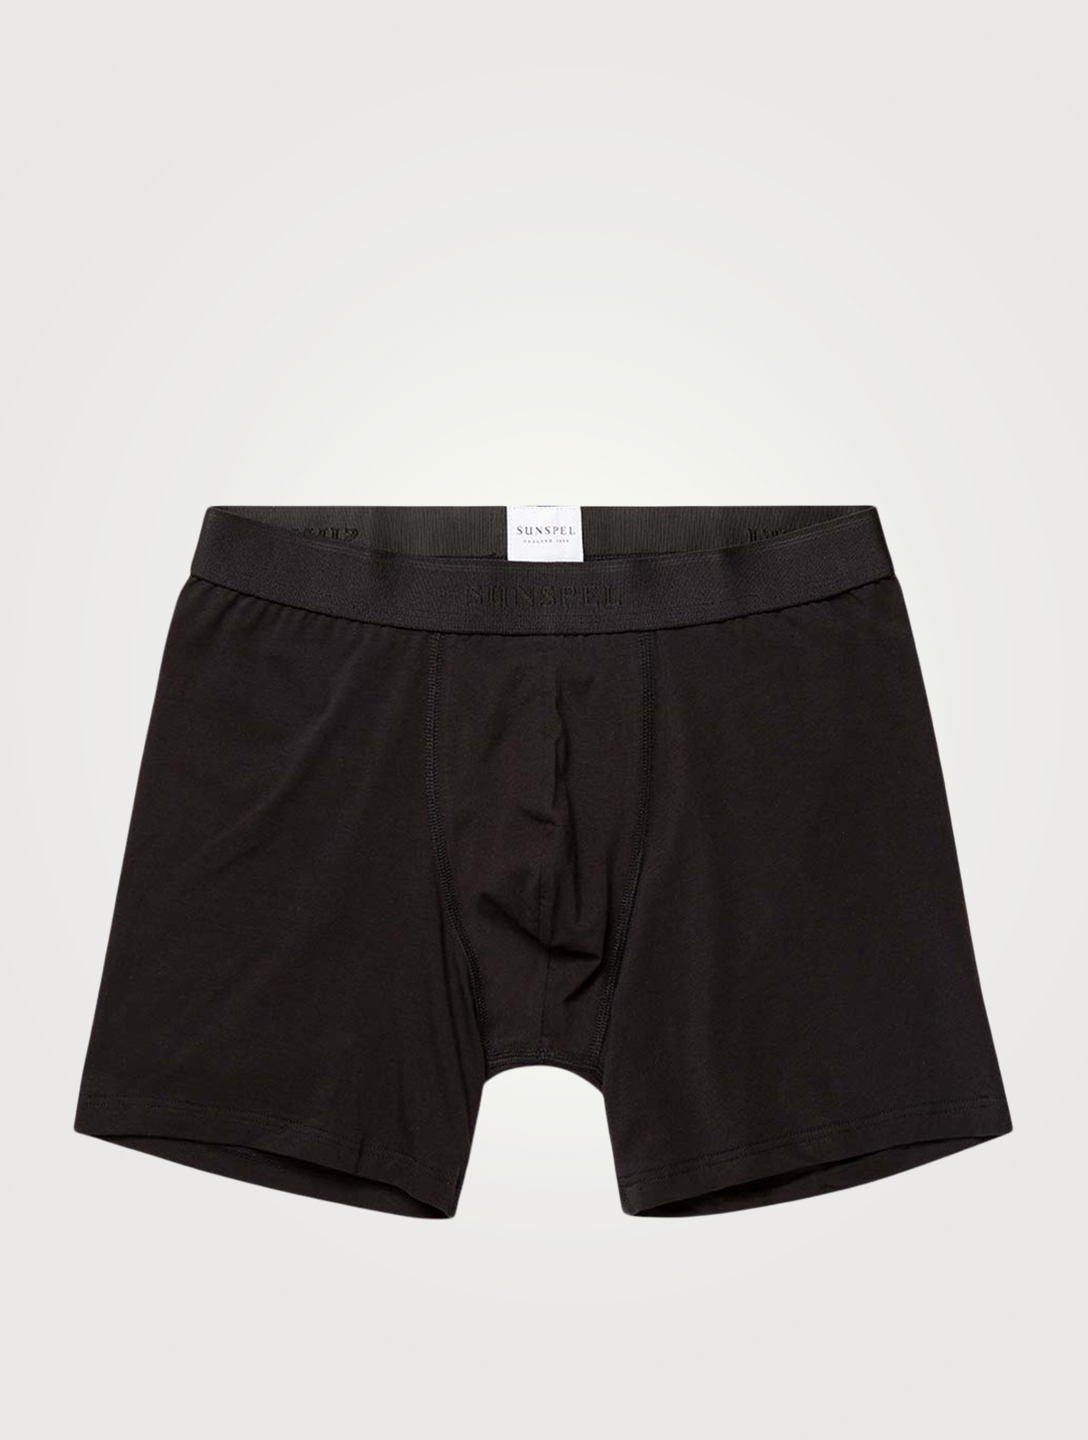 SUNSPEL Stretch Cotton Long Boxer Briefs Men's Black